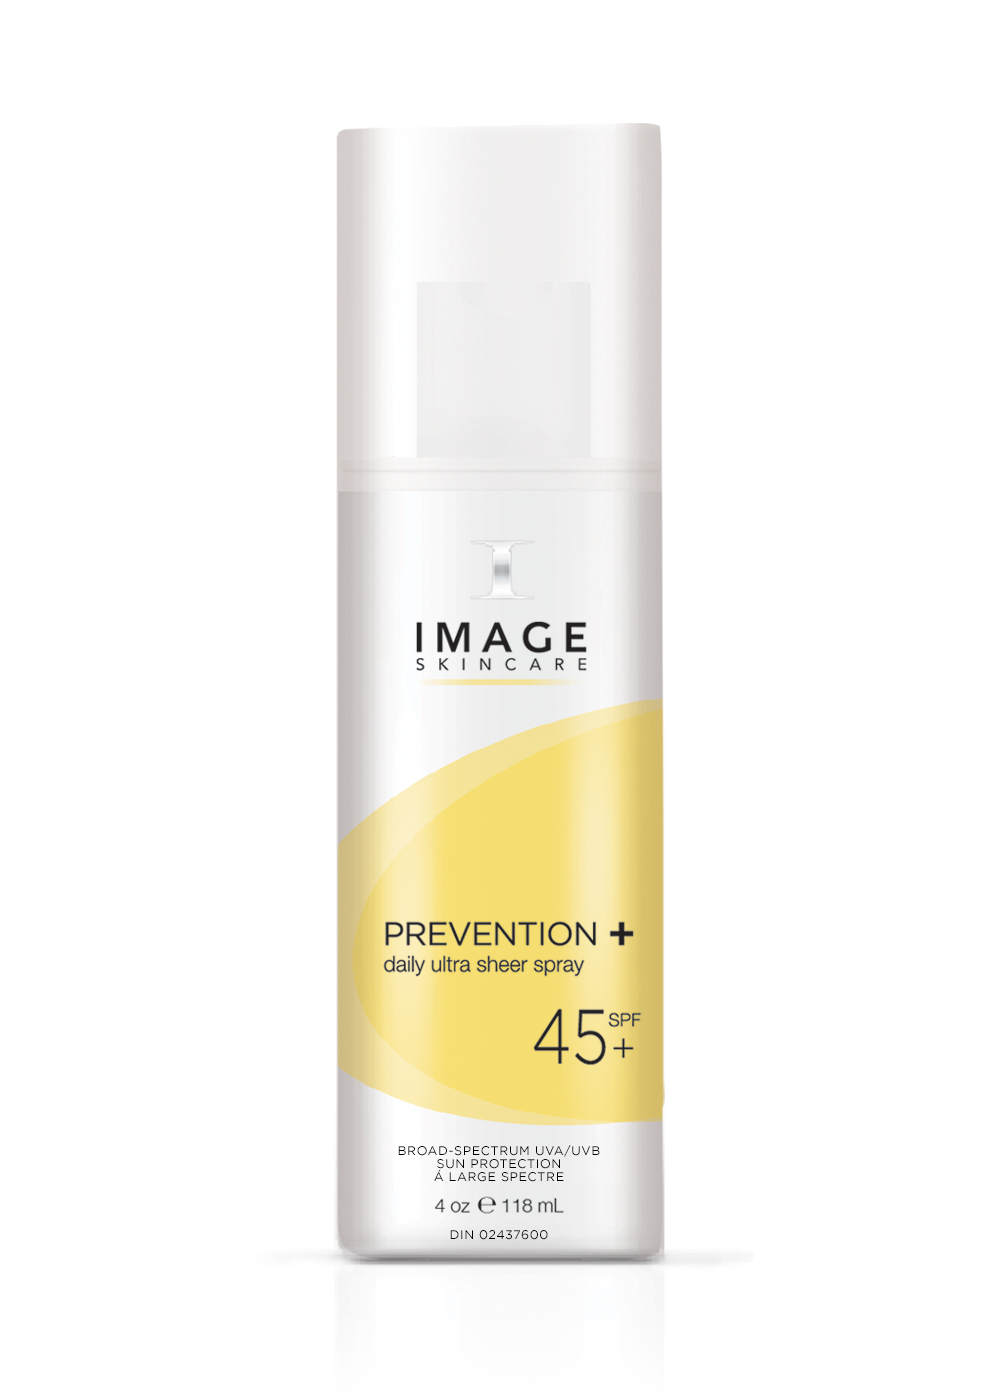 PREVENTION+    daily ultra sheer spray spf 45 á large spectre